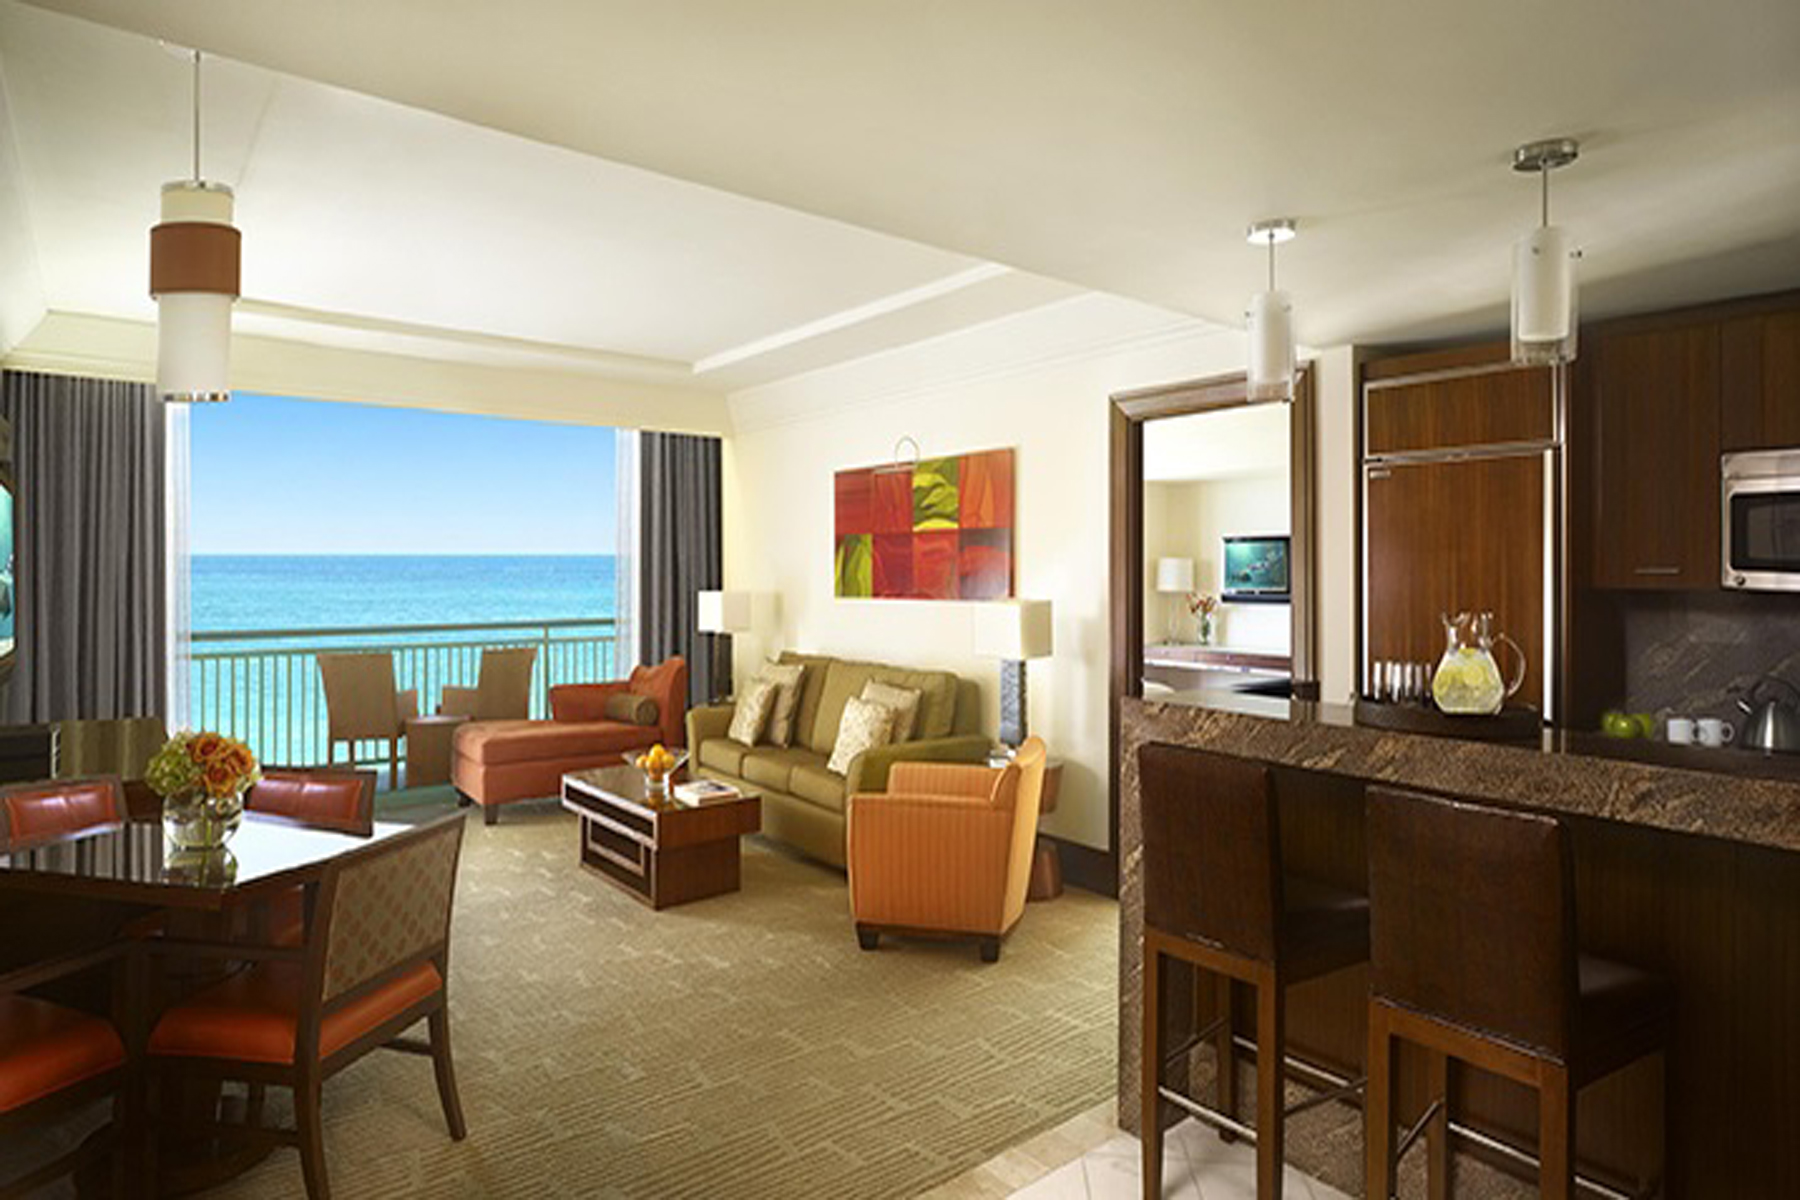 Condominium for Sale at The Reef at Atlantis, 14-906 & 14-908 The Reef At Atlantis, Paradise Island, Nassau And Paradise Island Bahamas